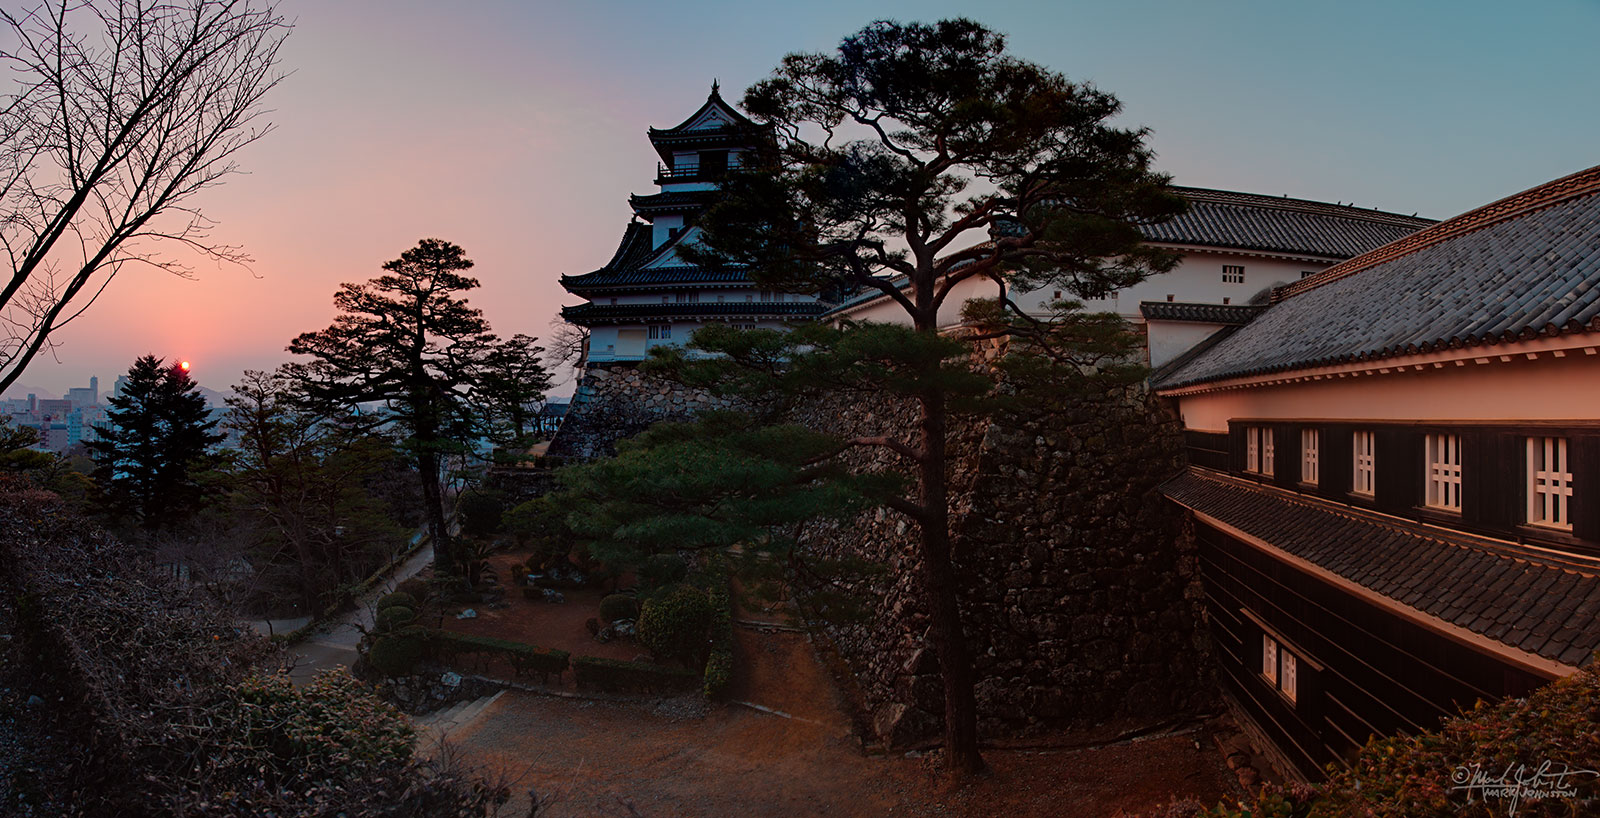 Kochi Castle at sunrise, Kochi City [高知市], Shikoku [四国], Japan.